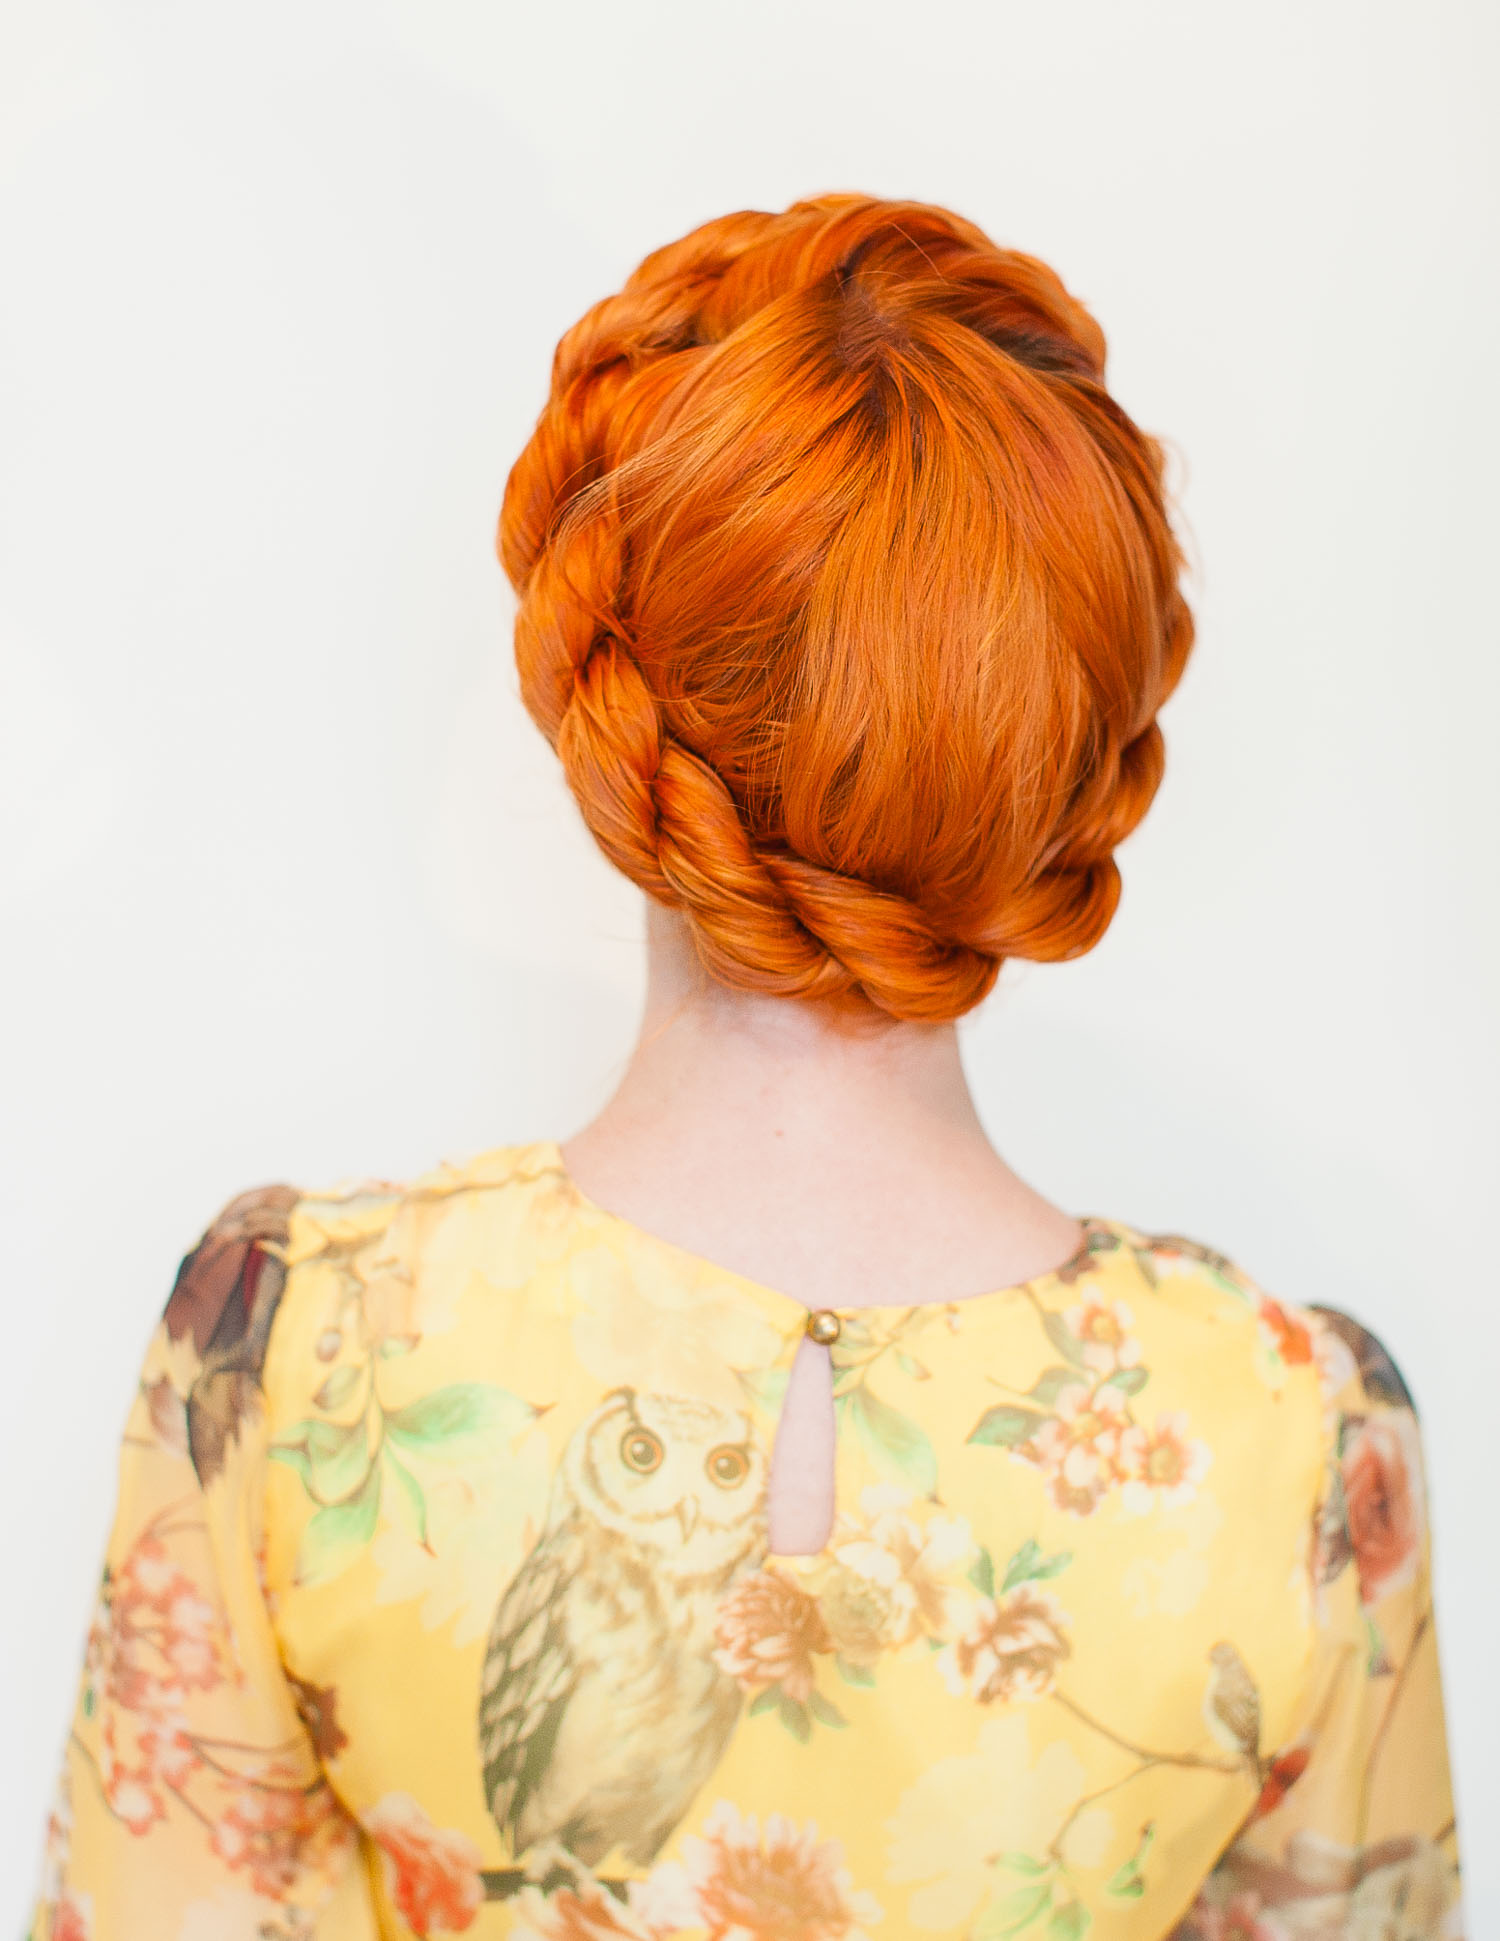 Twisted crown braid (click-through for the full tutorial)